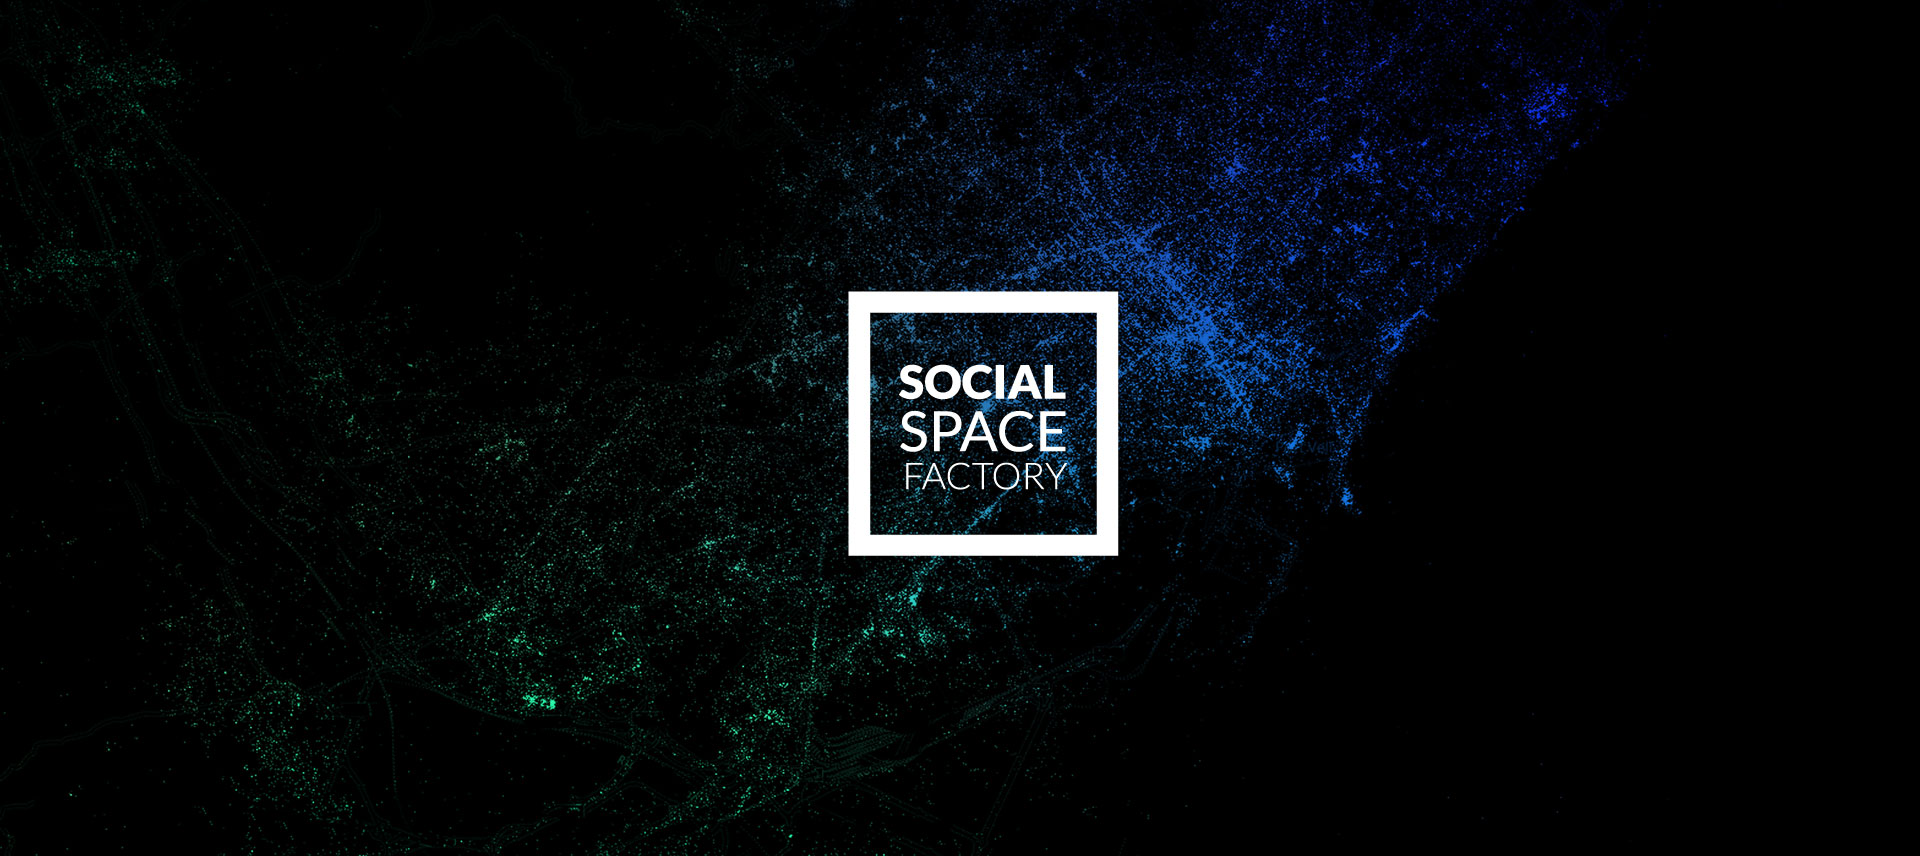 social-space-factory-01